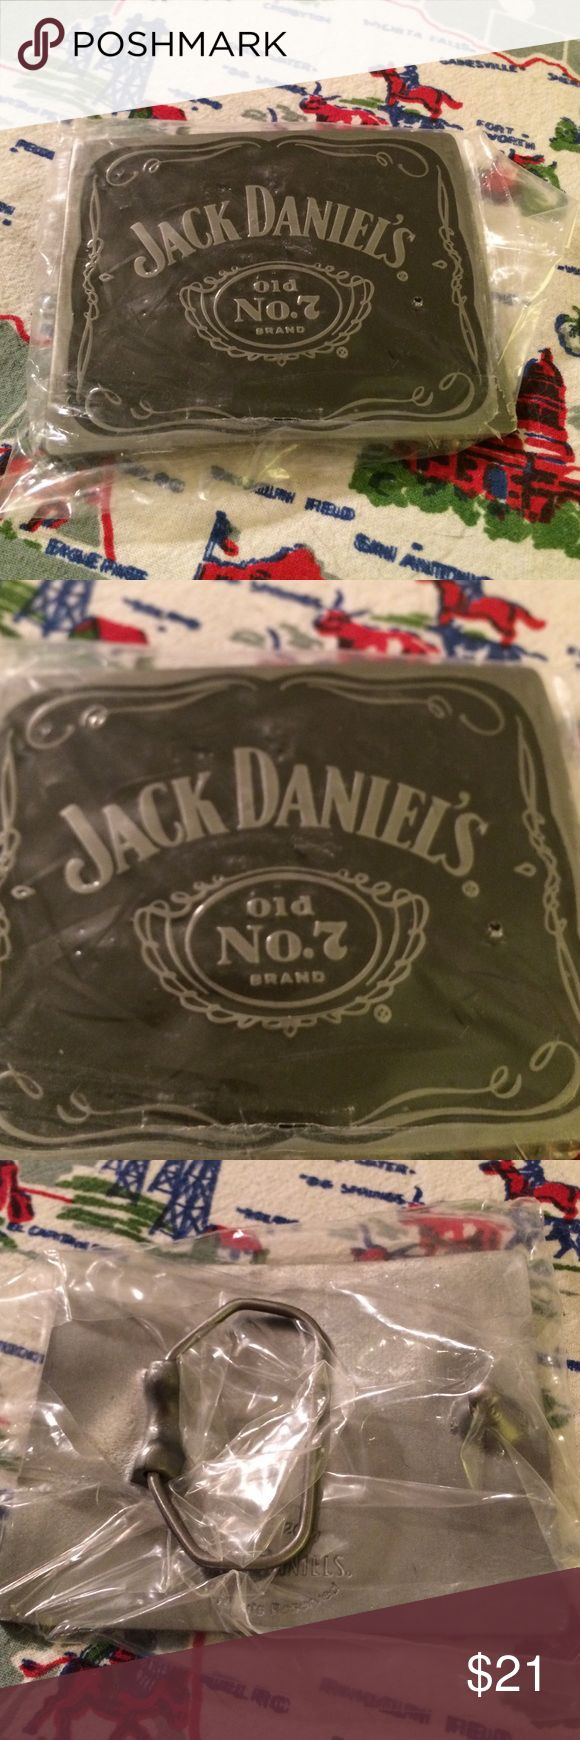 Jack Daniels Belt Buckle NEW New in Package JD buckle with Old No. 7 Logo, measures approx 2X3, Pewter Color Accented in Black - doesn't get much cooler than this🦂 Jack Daniels Boutique Accessories Belts